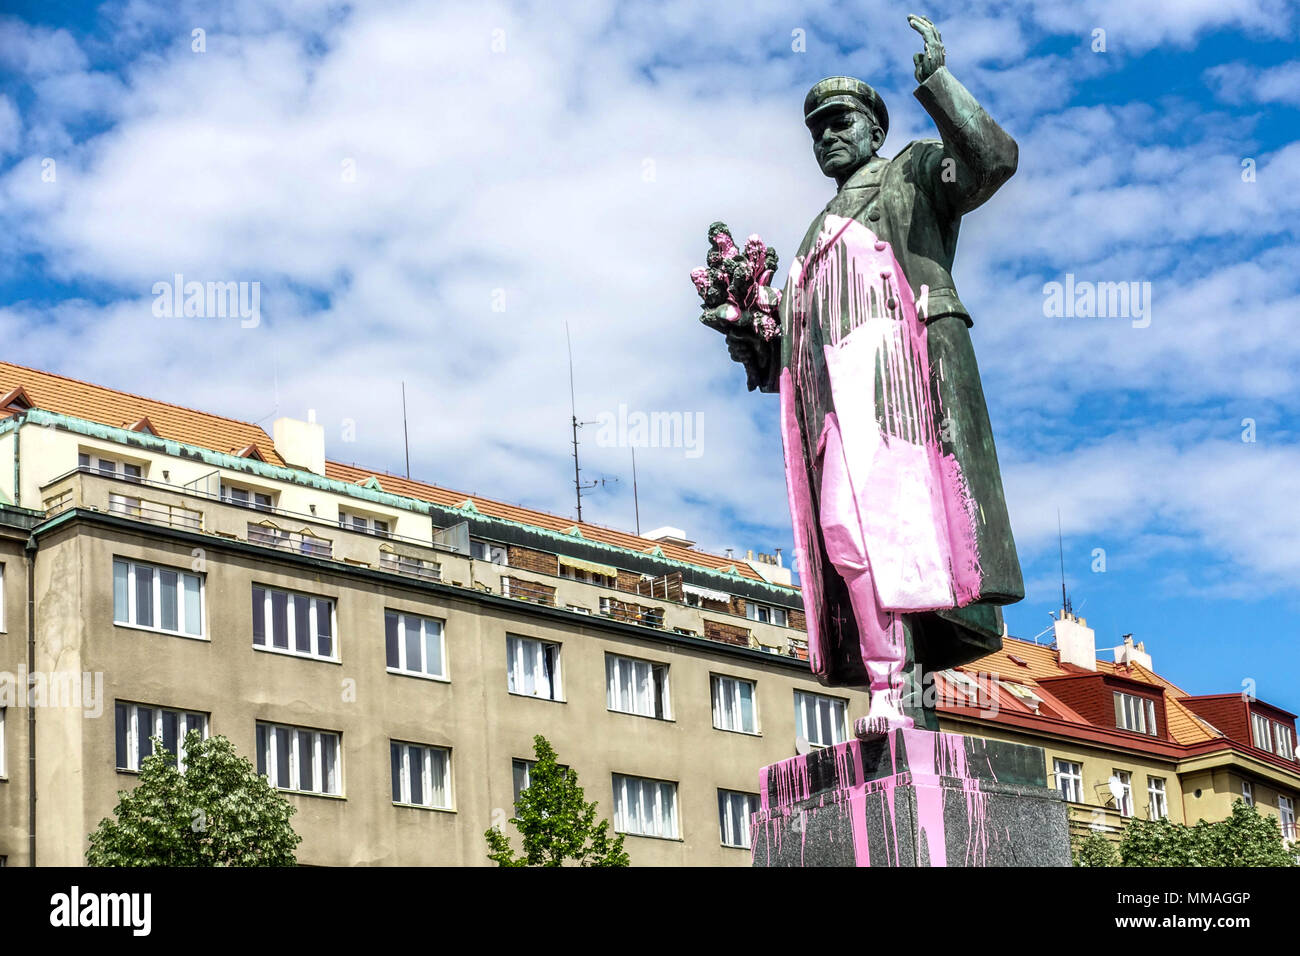 Statue of the Soviet Marshal Konev painted in pink color. Dejvice, Prague, Czech Republic - Stock Image